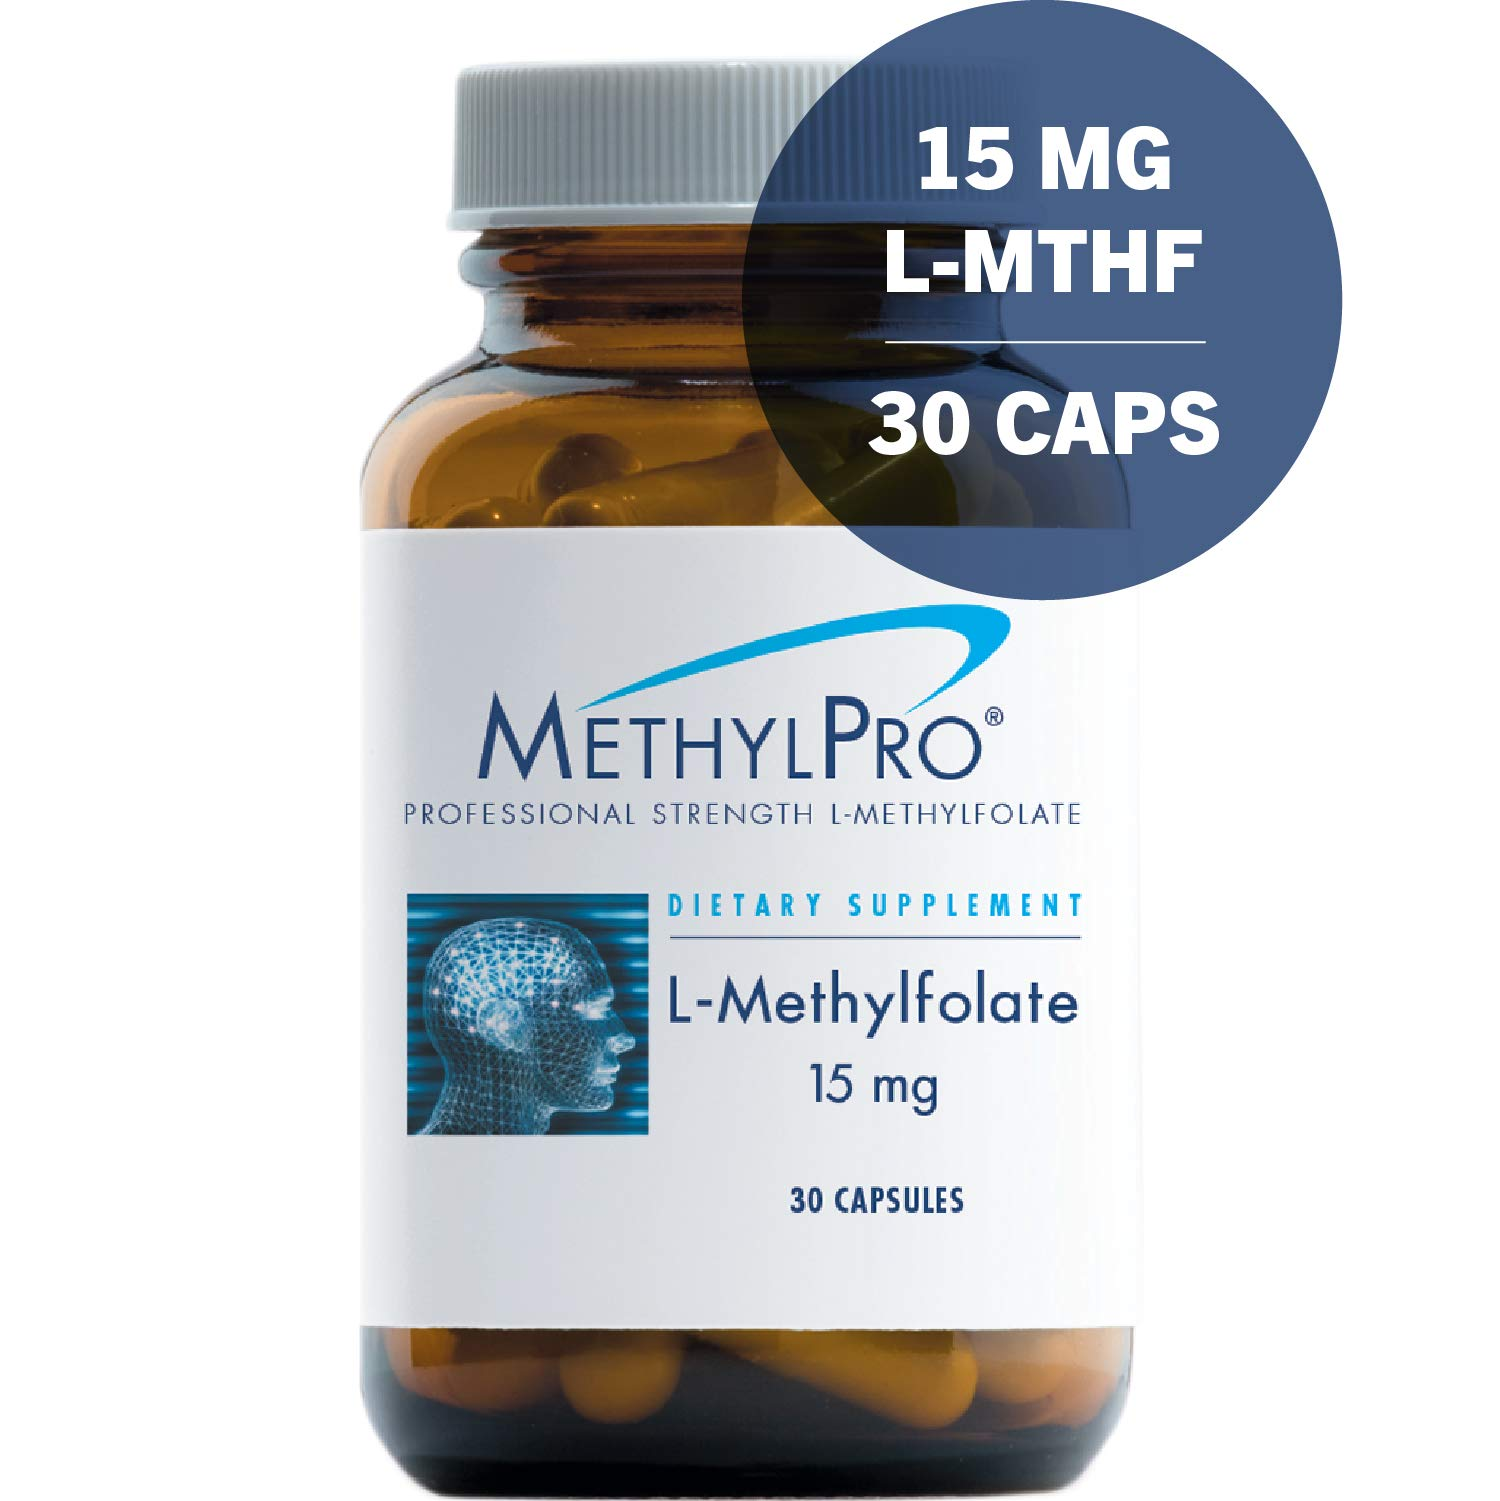 MethylPro 15mg L-Methylfolate 30 Capsules - No Fillers, Professional Strength 15000mcg Active Folate, 5-MTHF for Mood, Homocysteine Methylation + Immune Support, Non-GMO + Gluten-Free by MethylPro